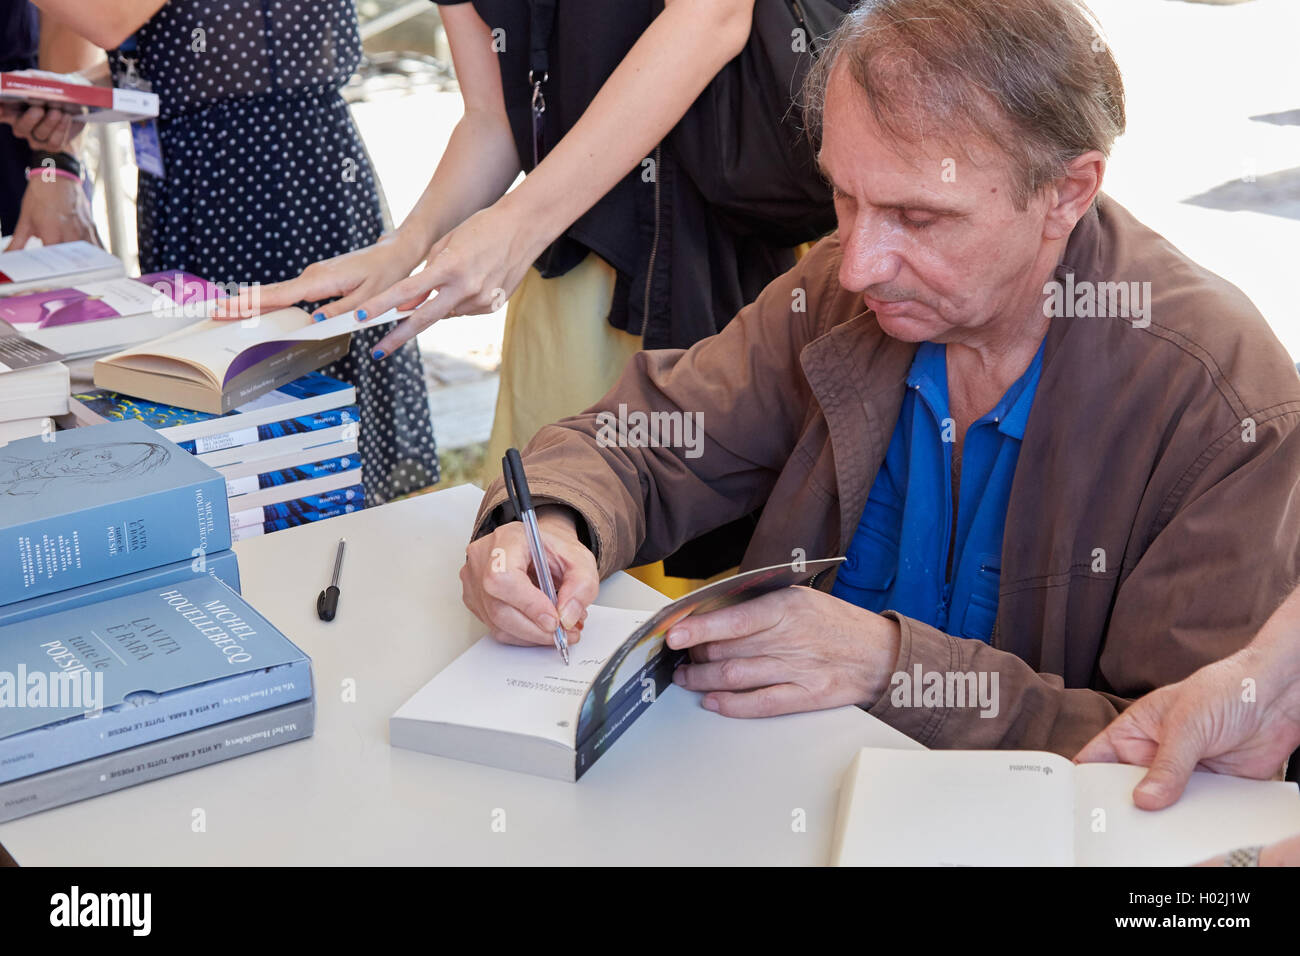 Writer Michel Houellebecq signing copies of his books during a festival - Stock Image